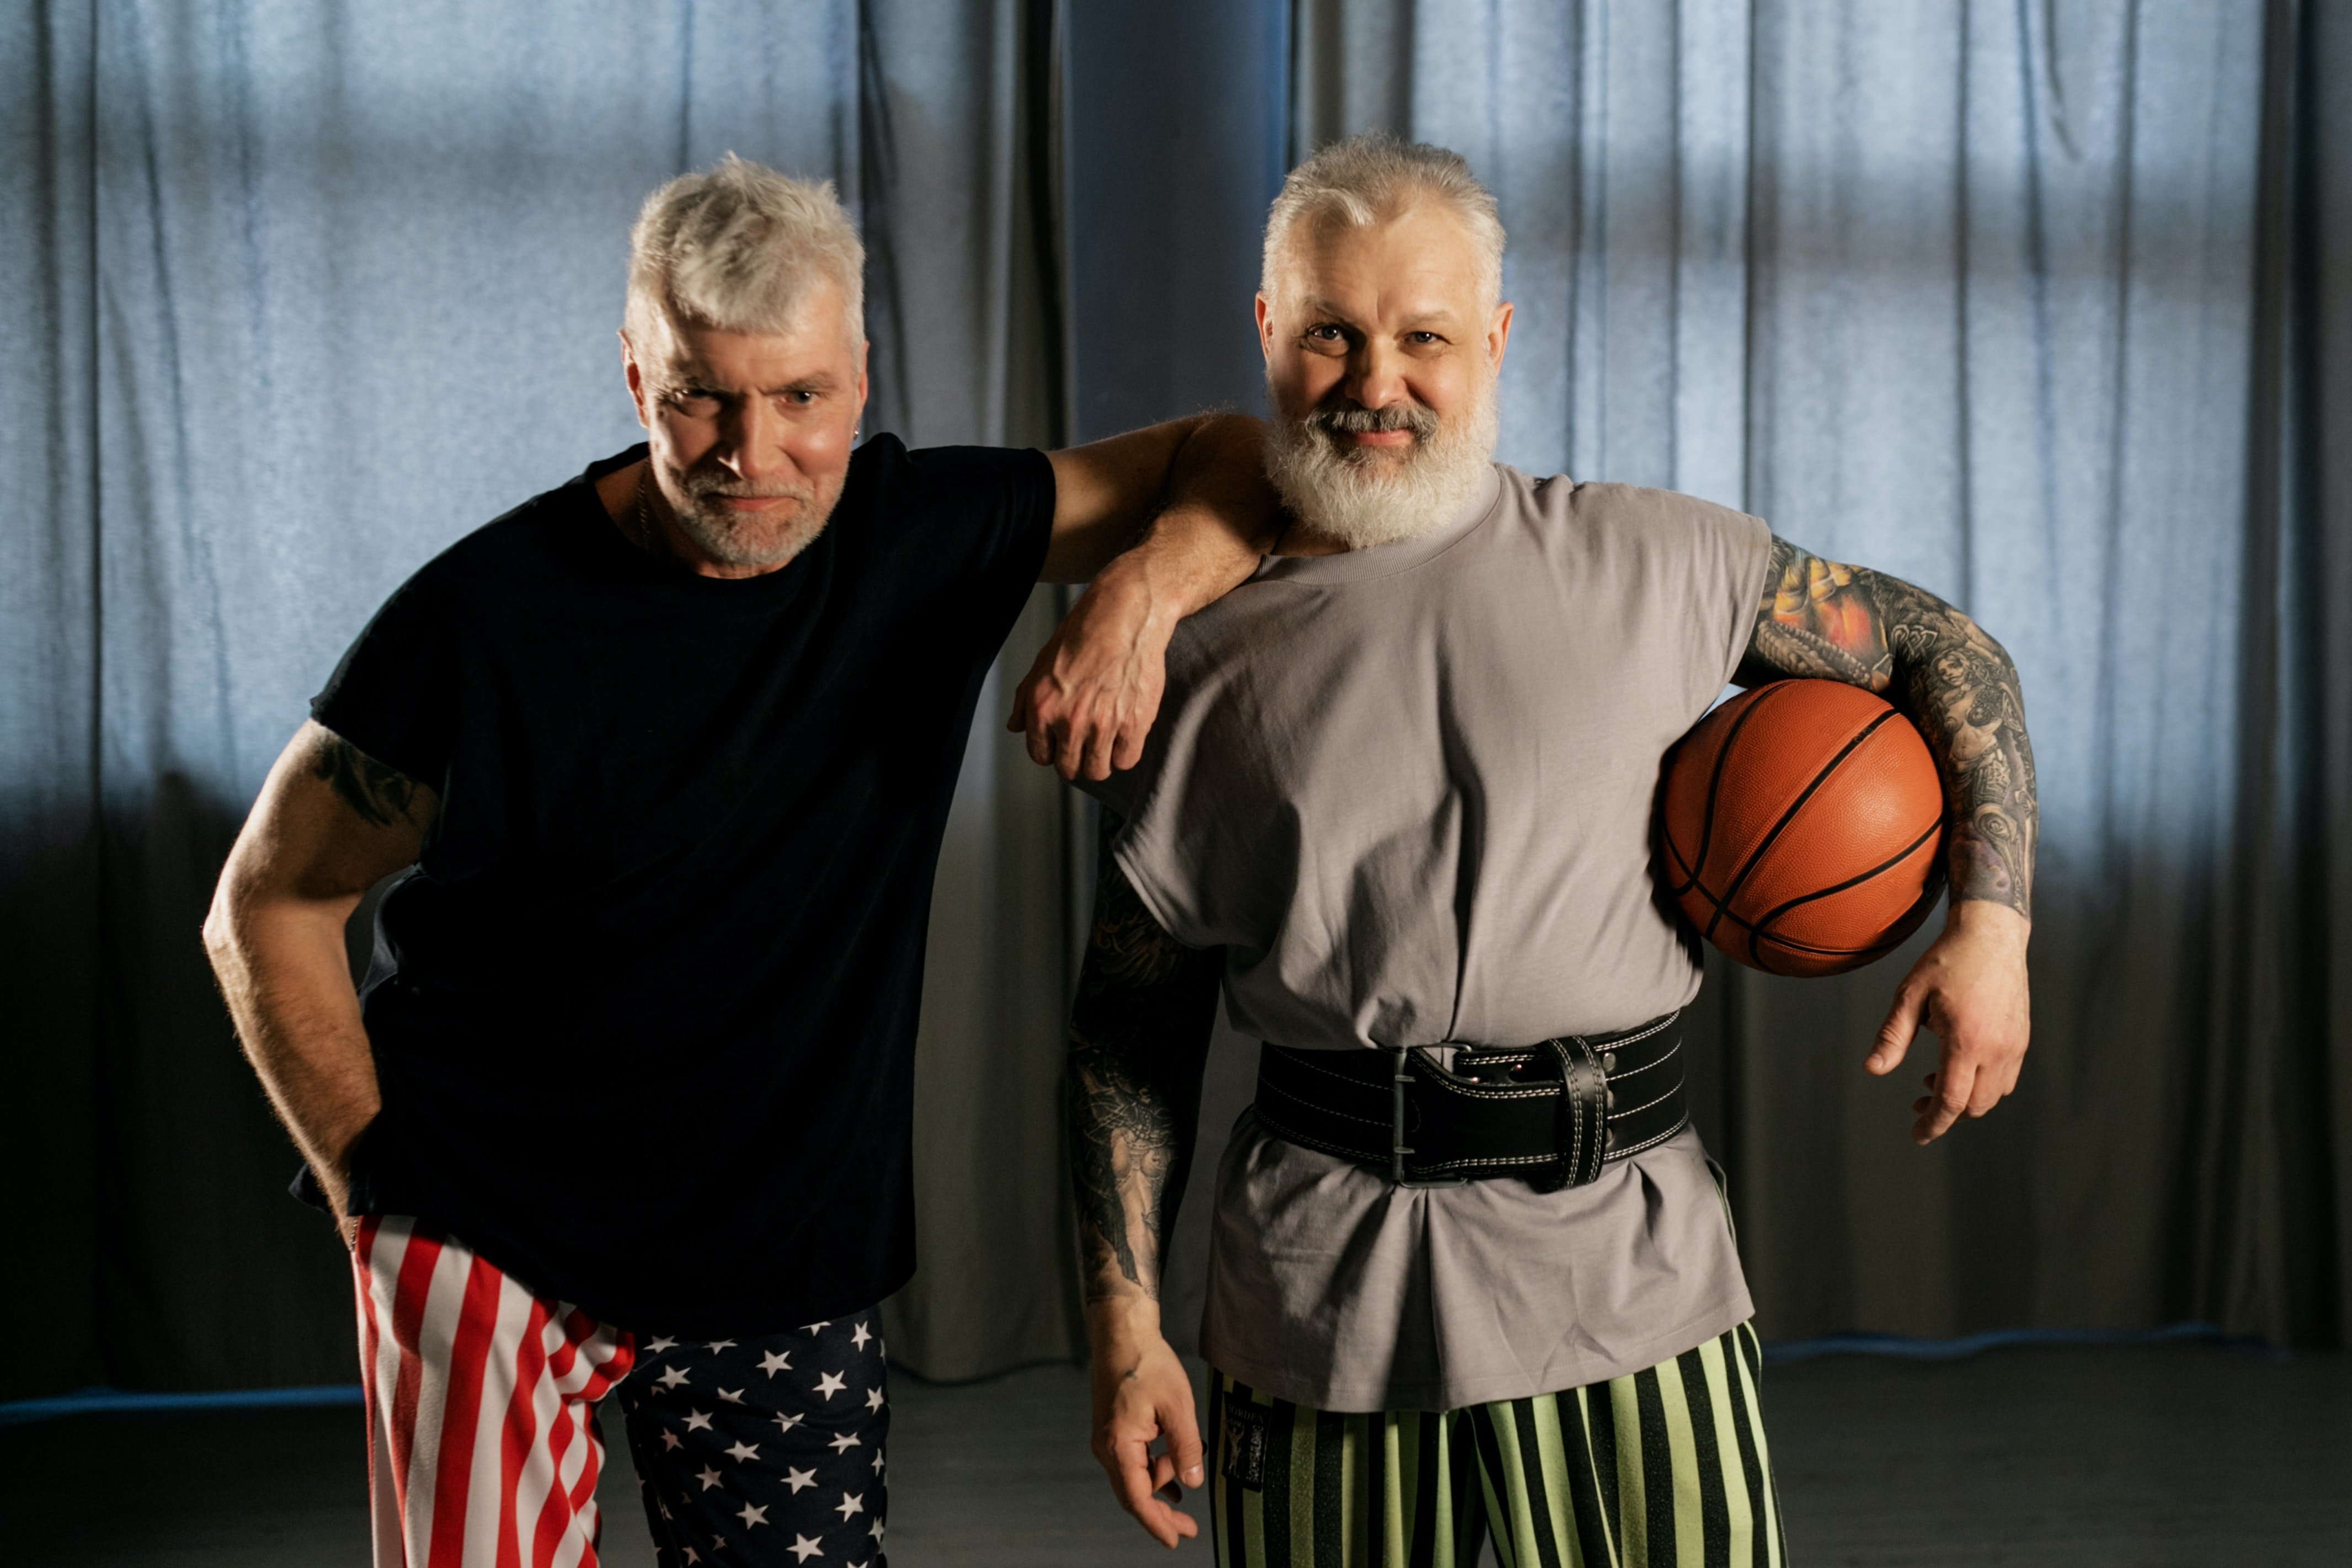 Pictured - Two elderly men smiling while one holds a basketball ball | Source: Pexels